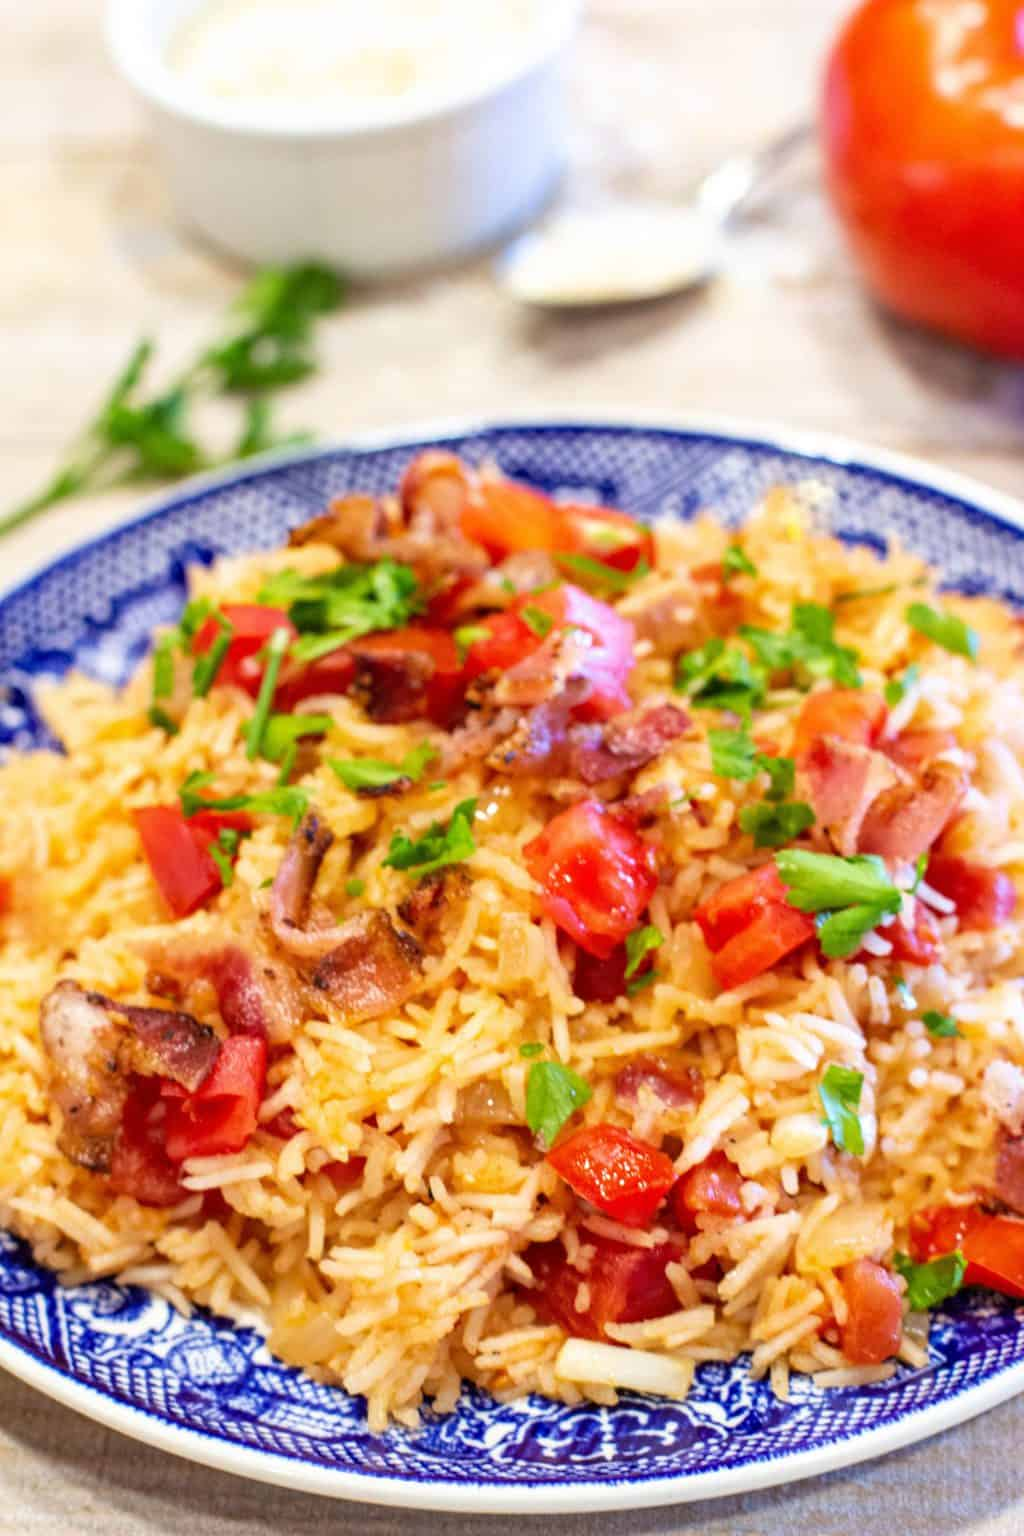 Tomatoes and Rice is an old fashioned, classic Southern family favorite side dish. Sweet onion is sautéed in bacon grease before adding Basmati rice and fresh or canned tomatoes.